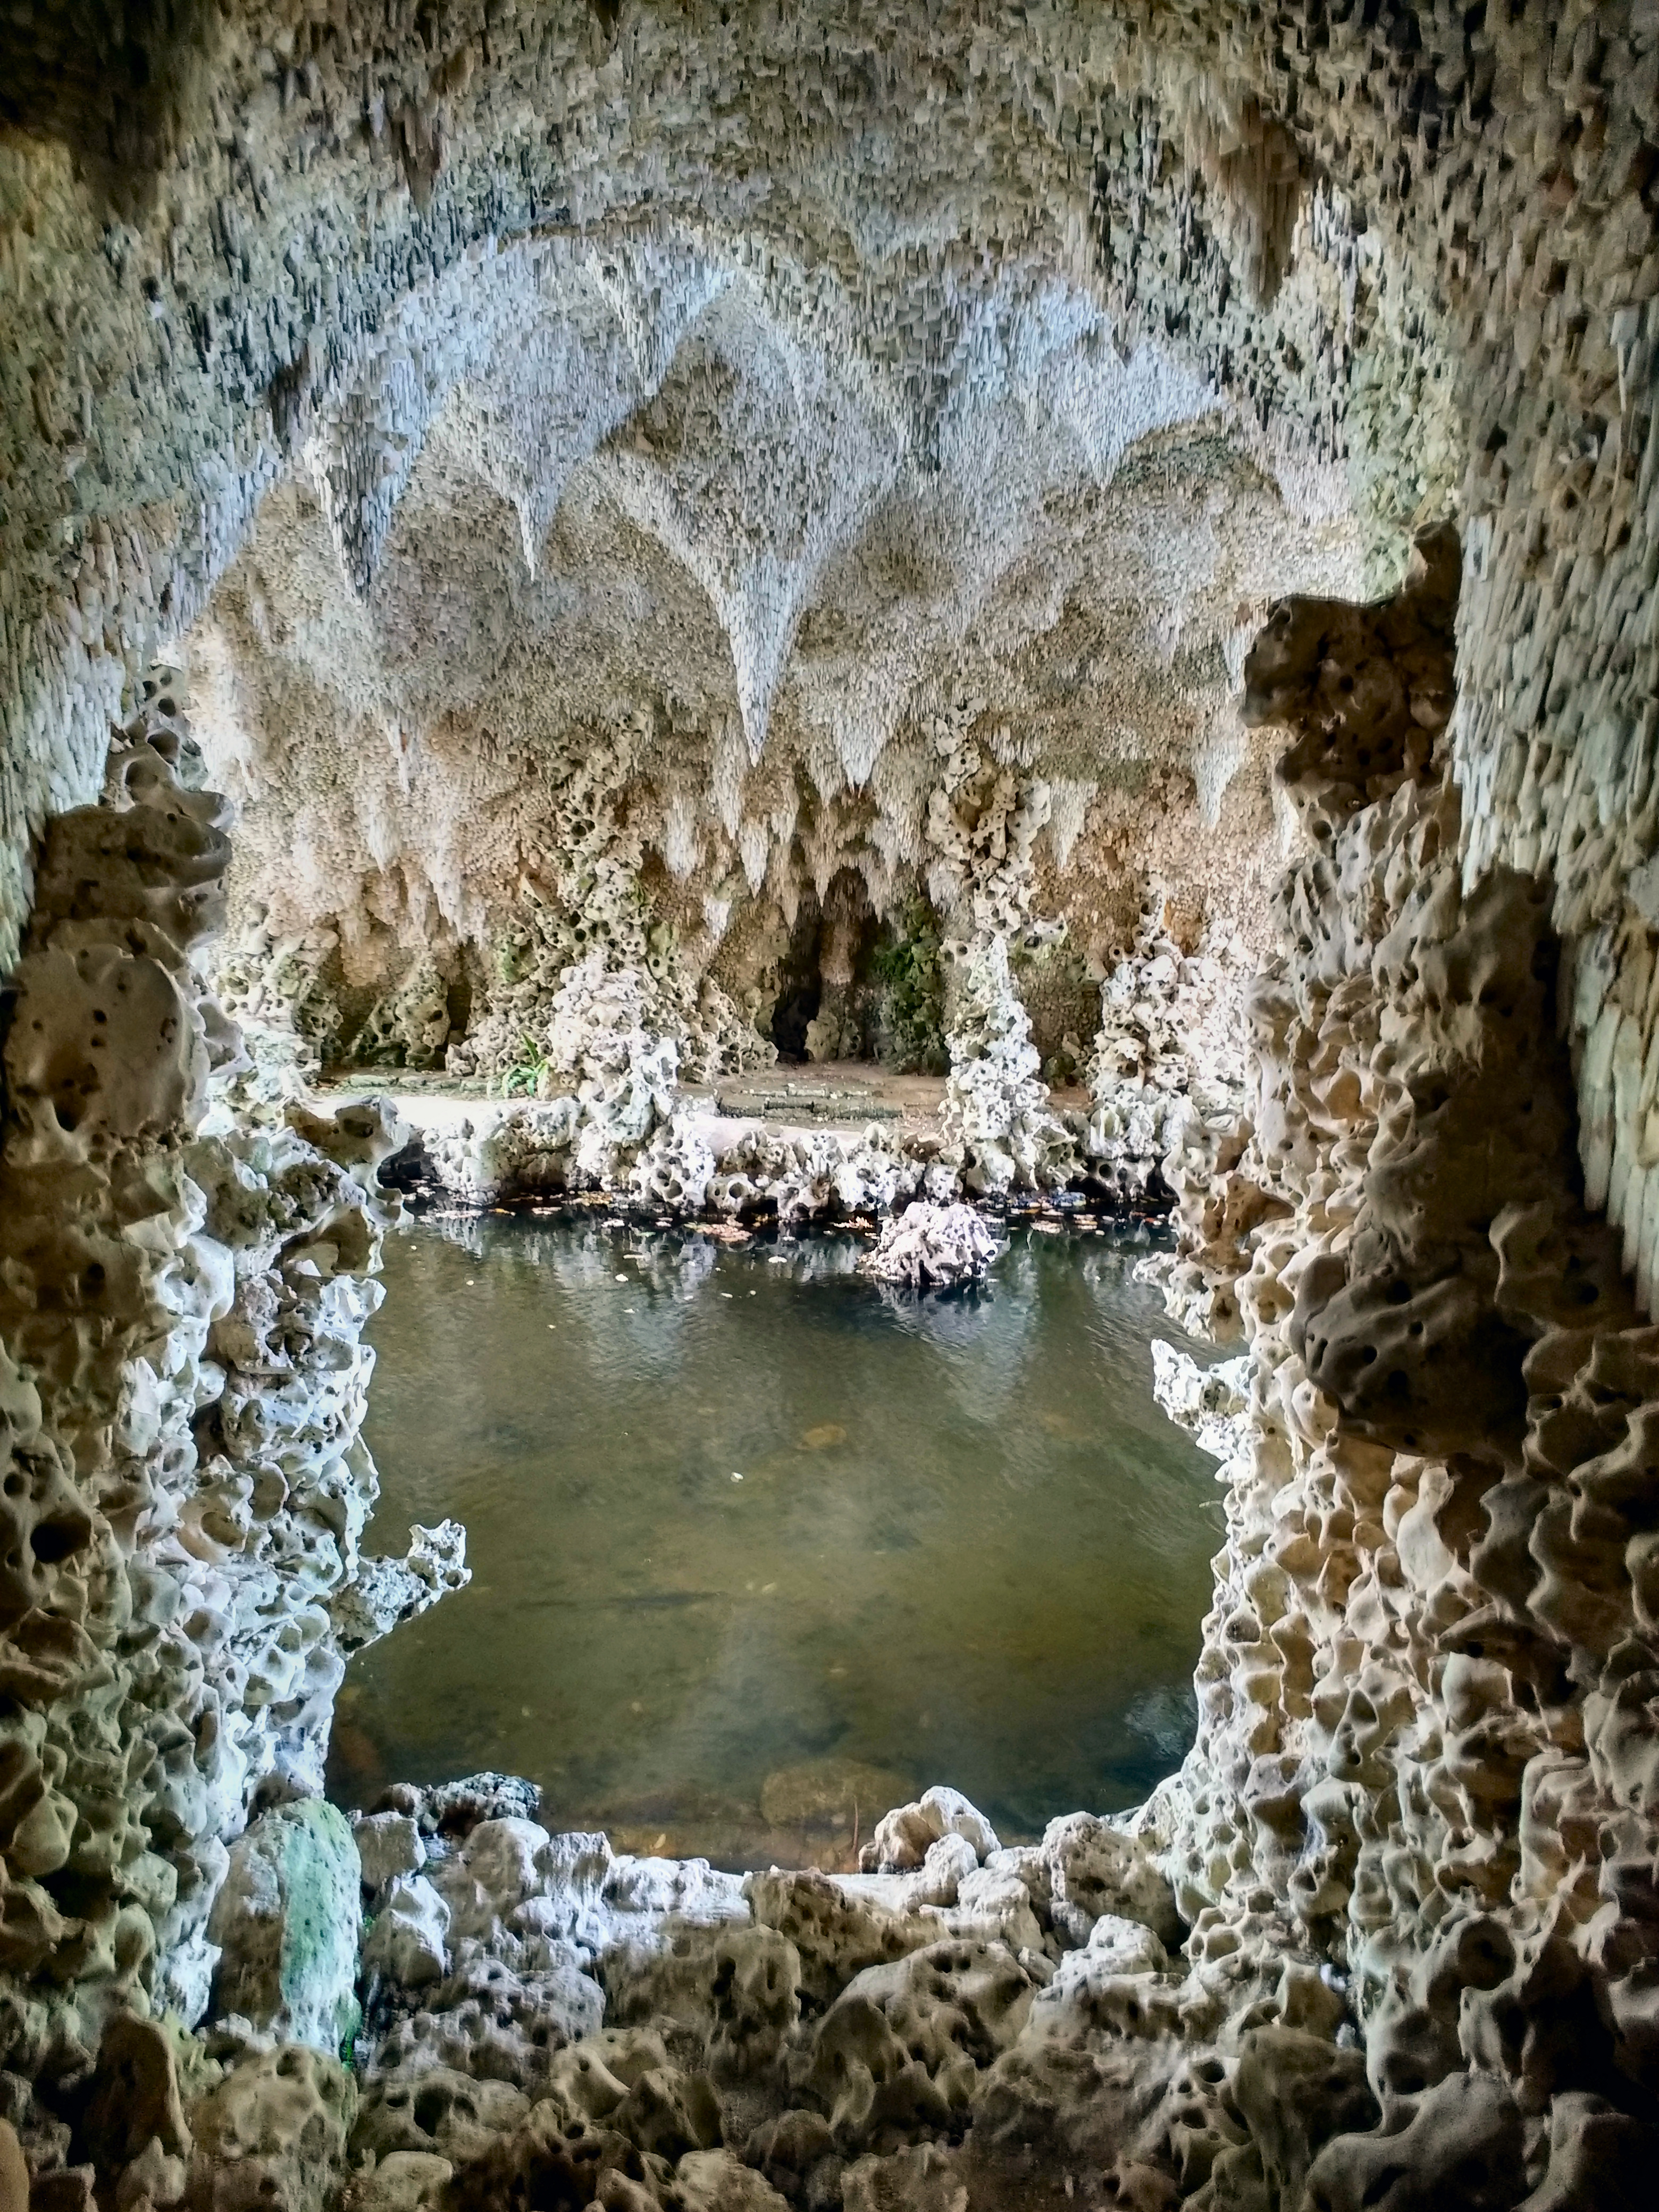 Painshill_Park_Crystal_Grotto_%27Nature%27s_Mirror%27.jpg